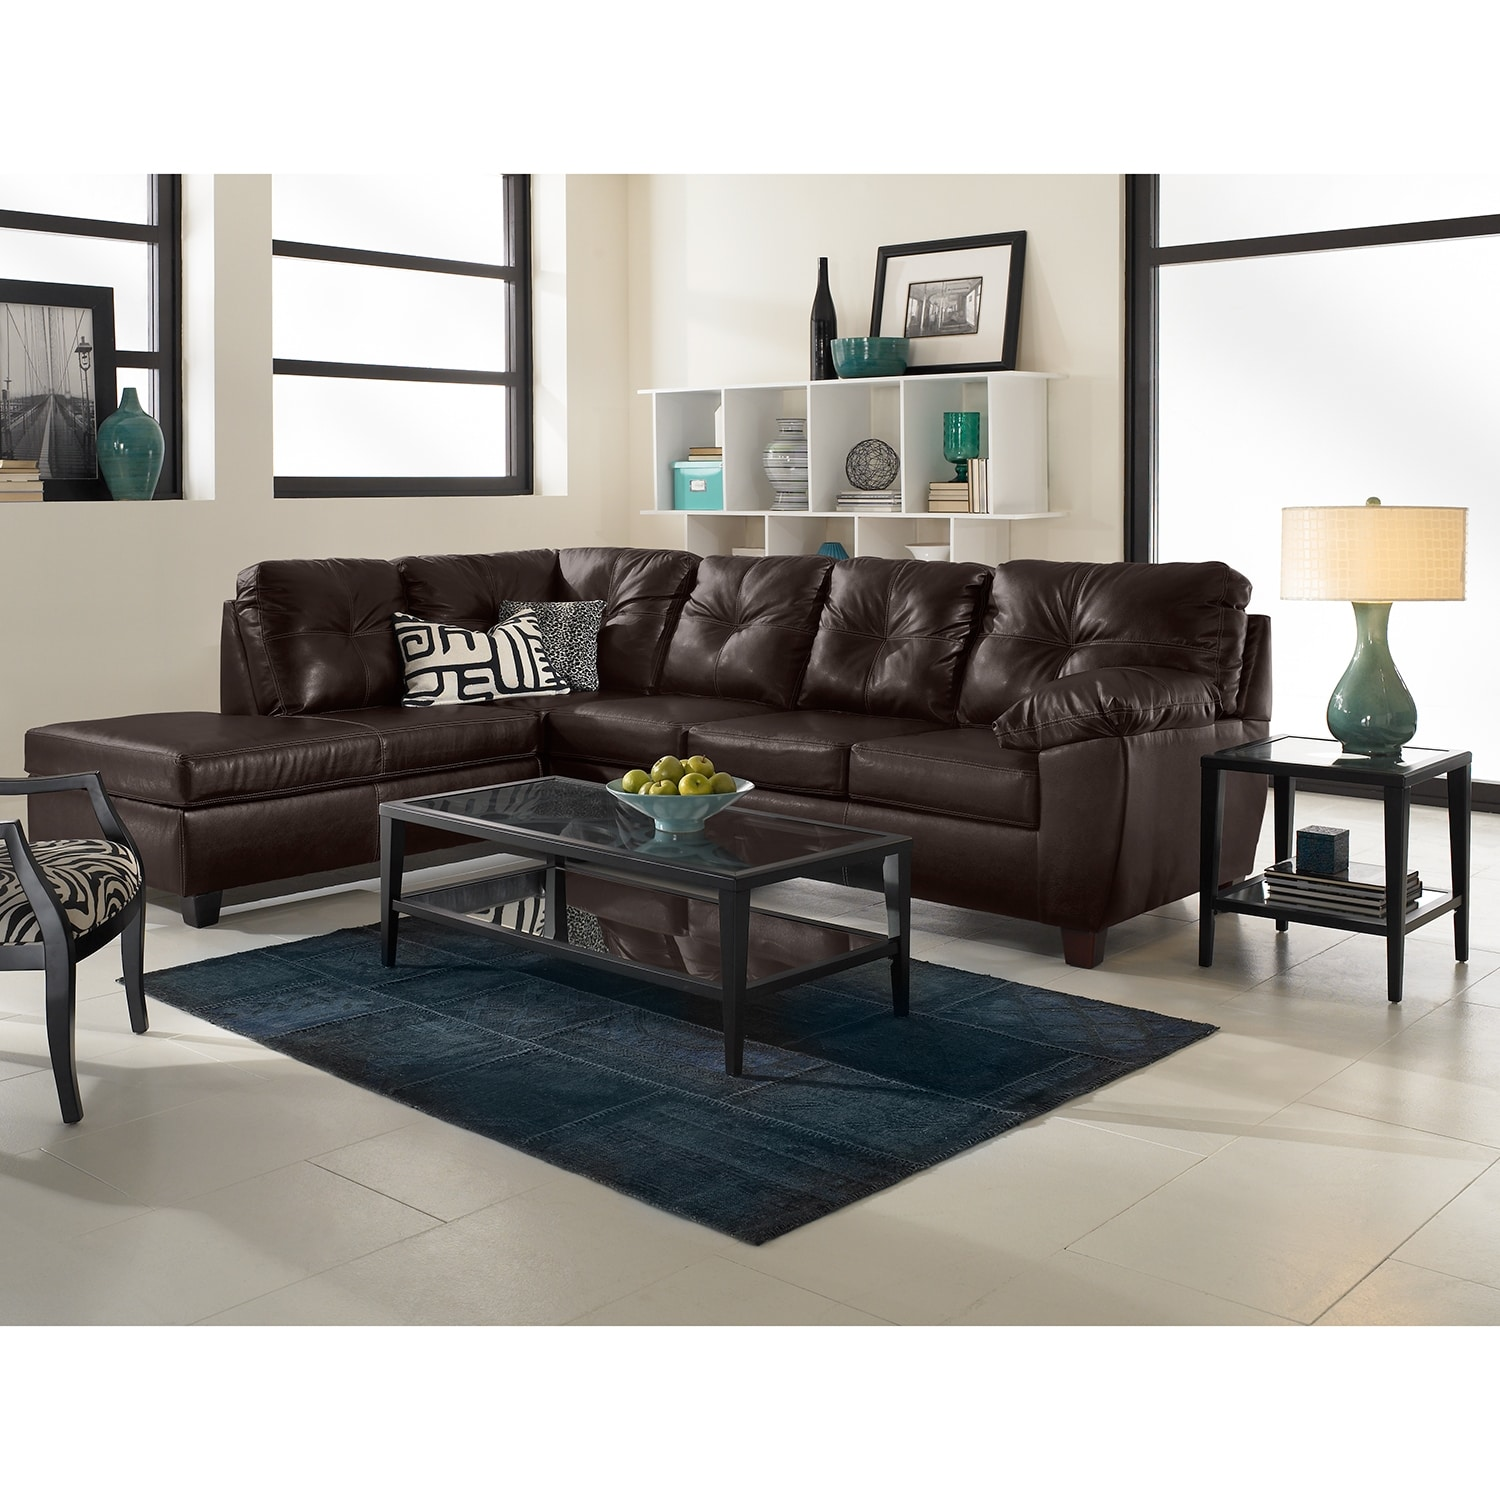 Rialto iii leather 2 pc sectional with chaise value for Chaise living room furniture